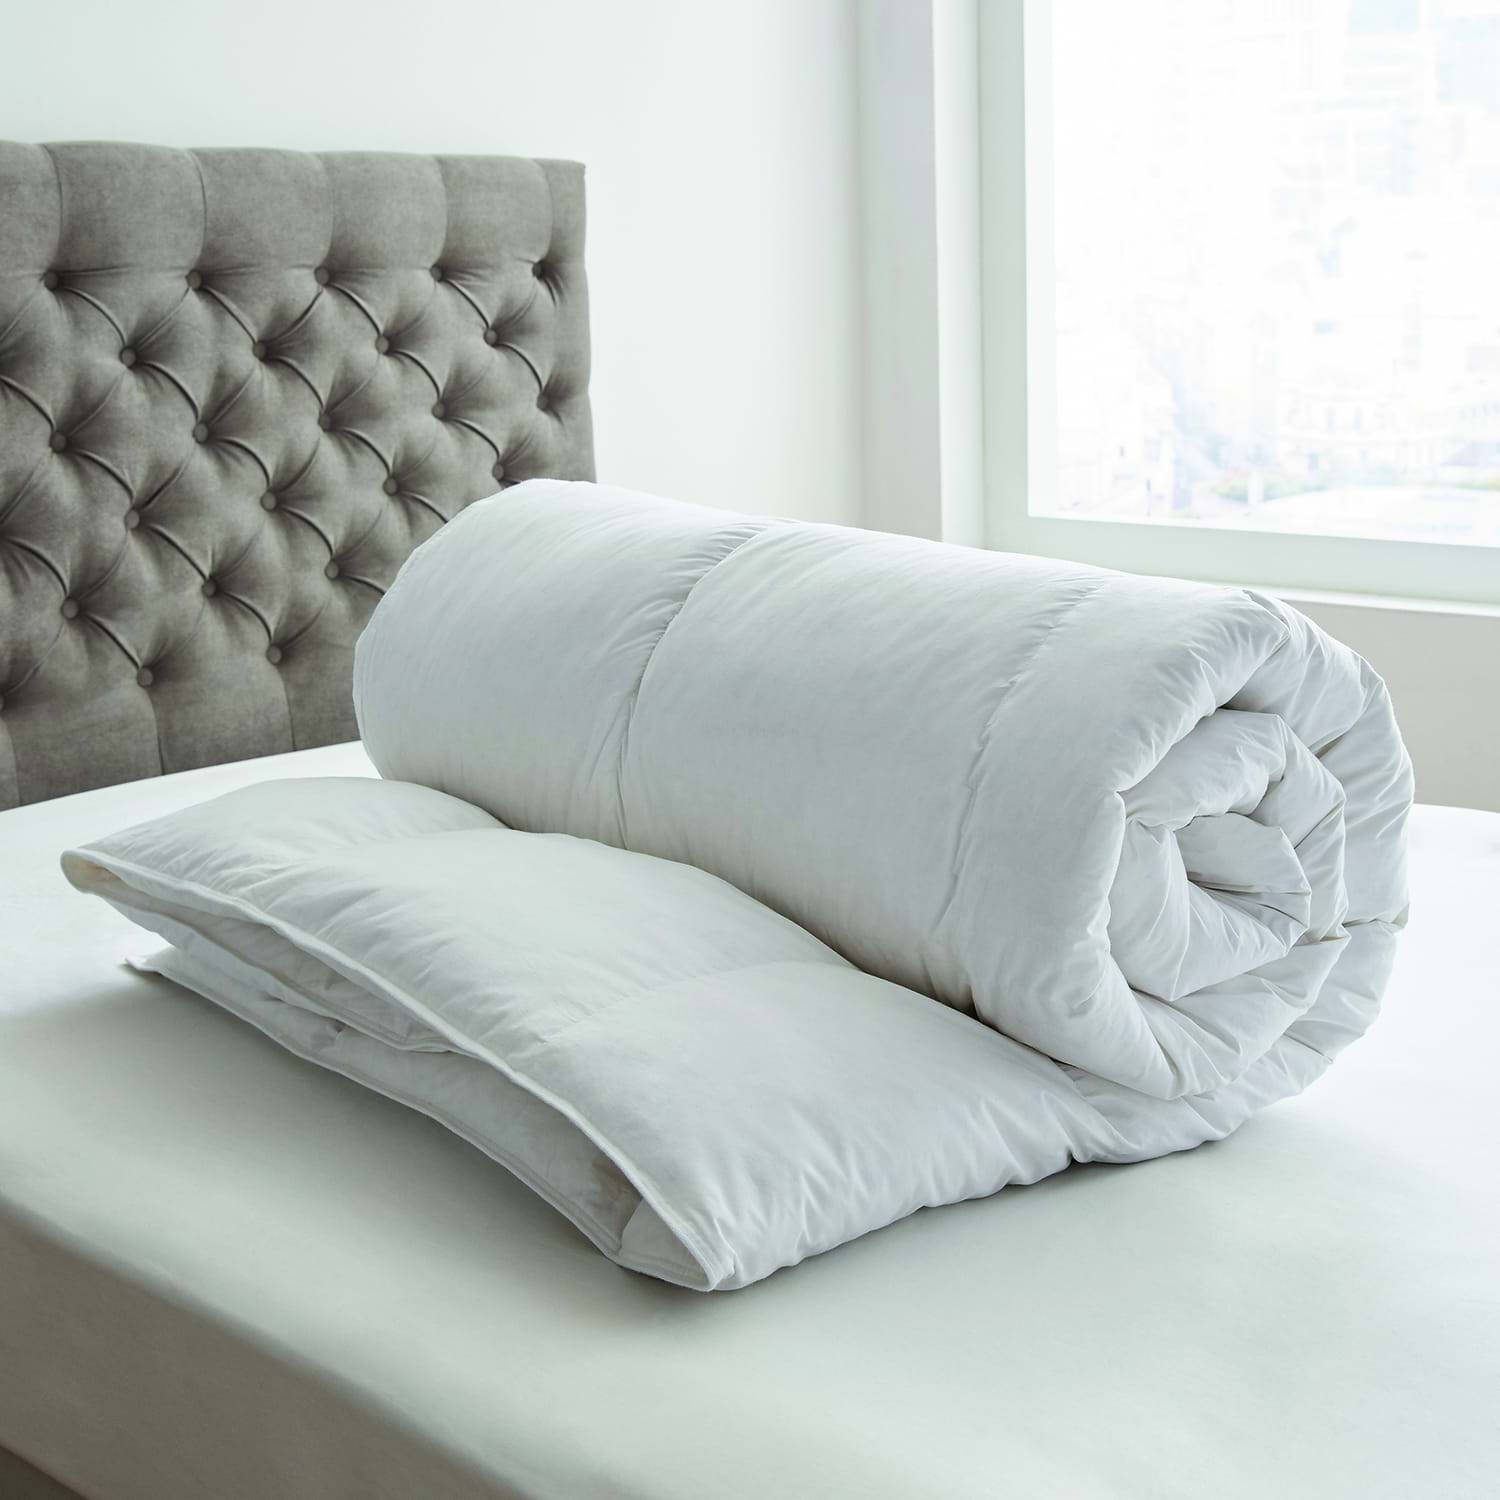 Image of Bedeck Goose Feather and Down Duvet 13.5 Tog, King, White